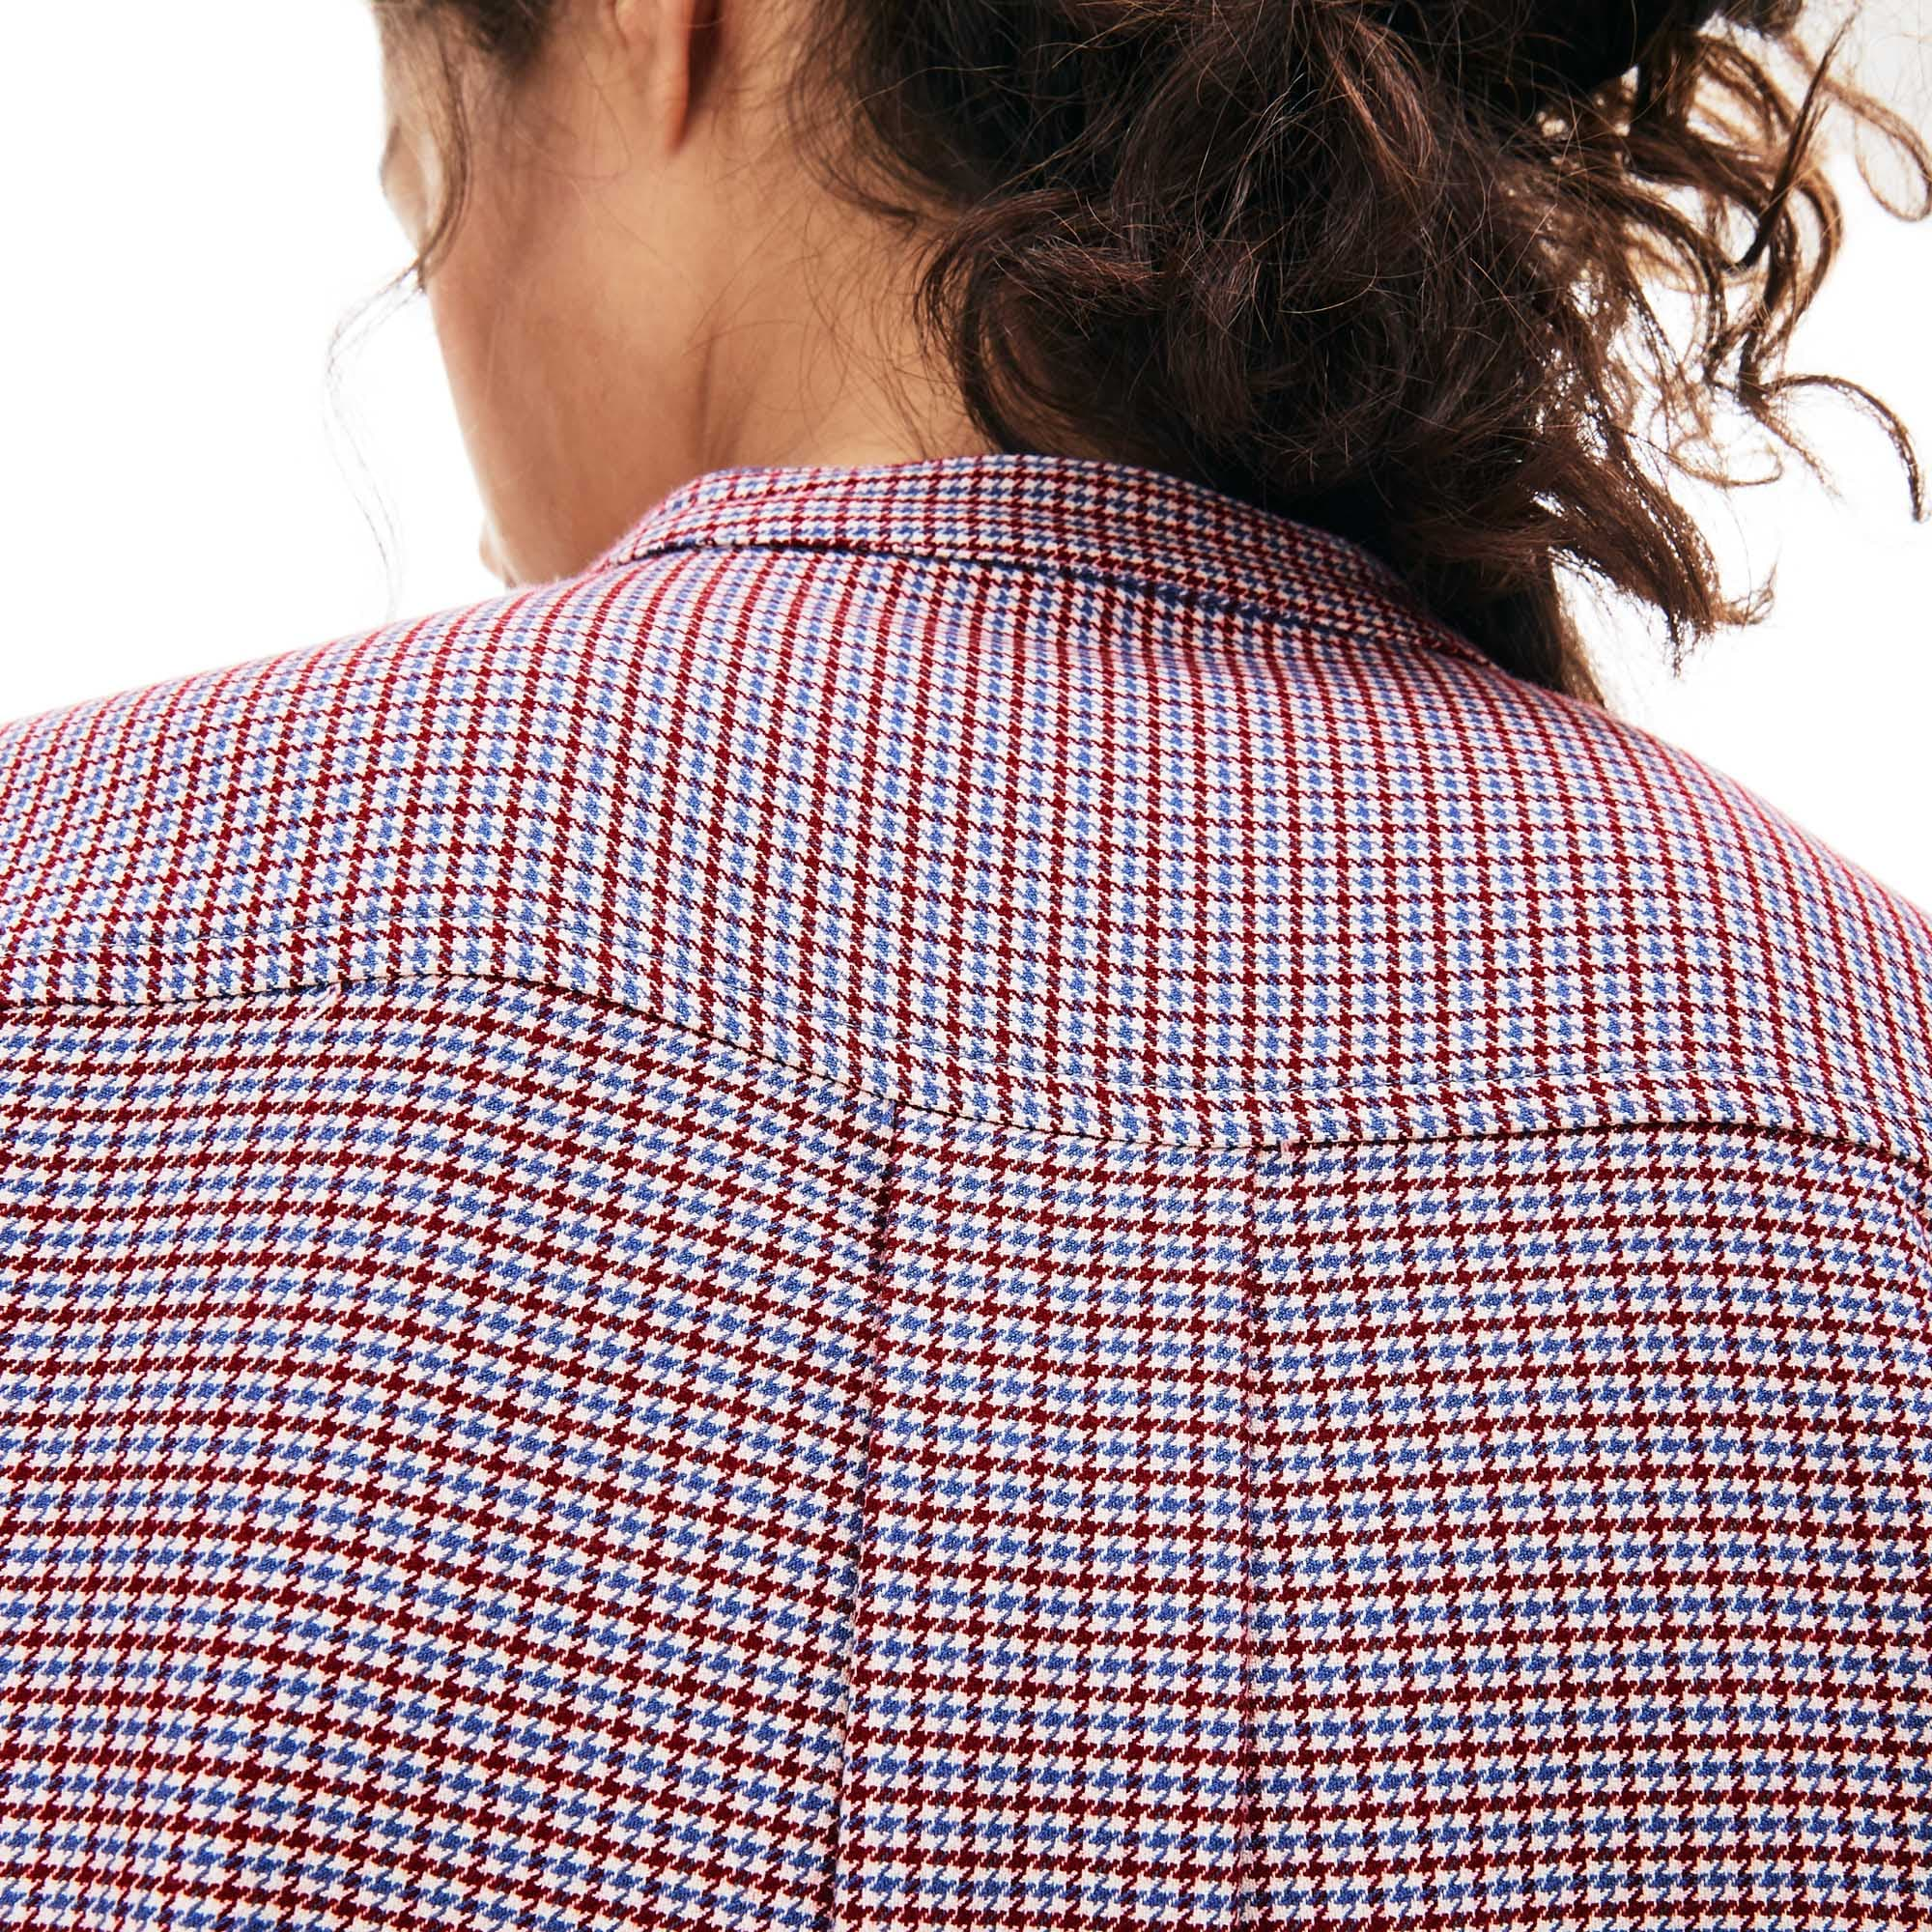 Women's Loose Fit Mao Collar Check Print Shirt